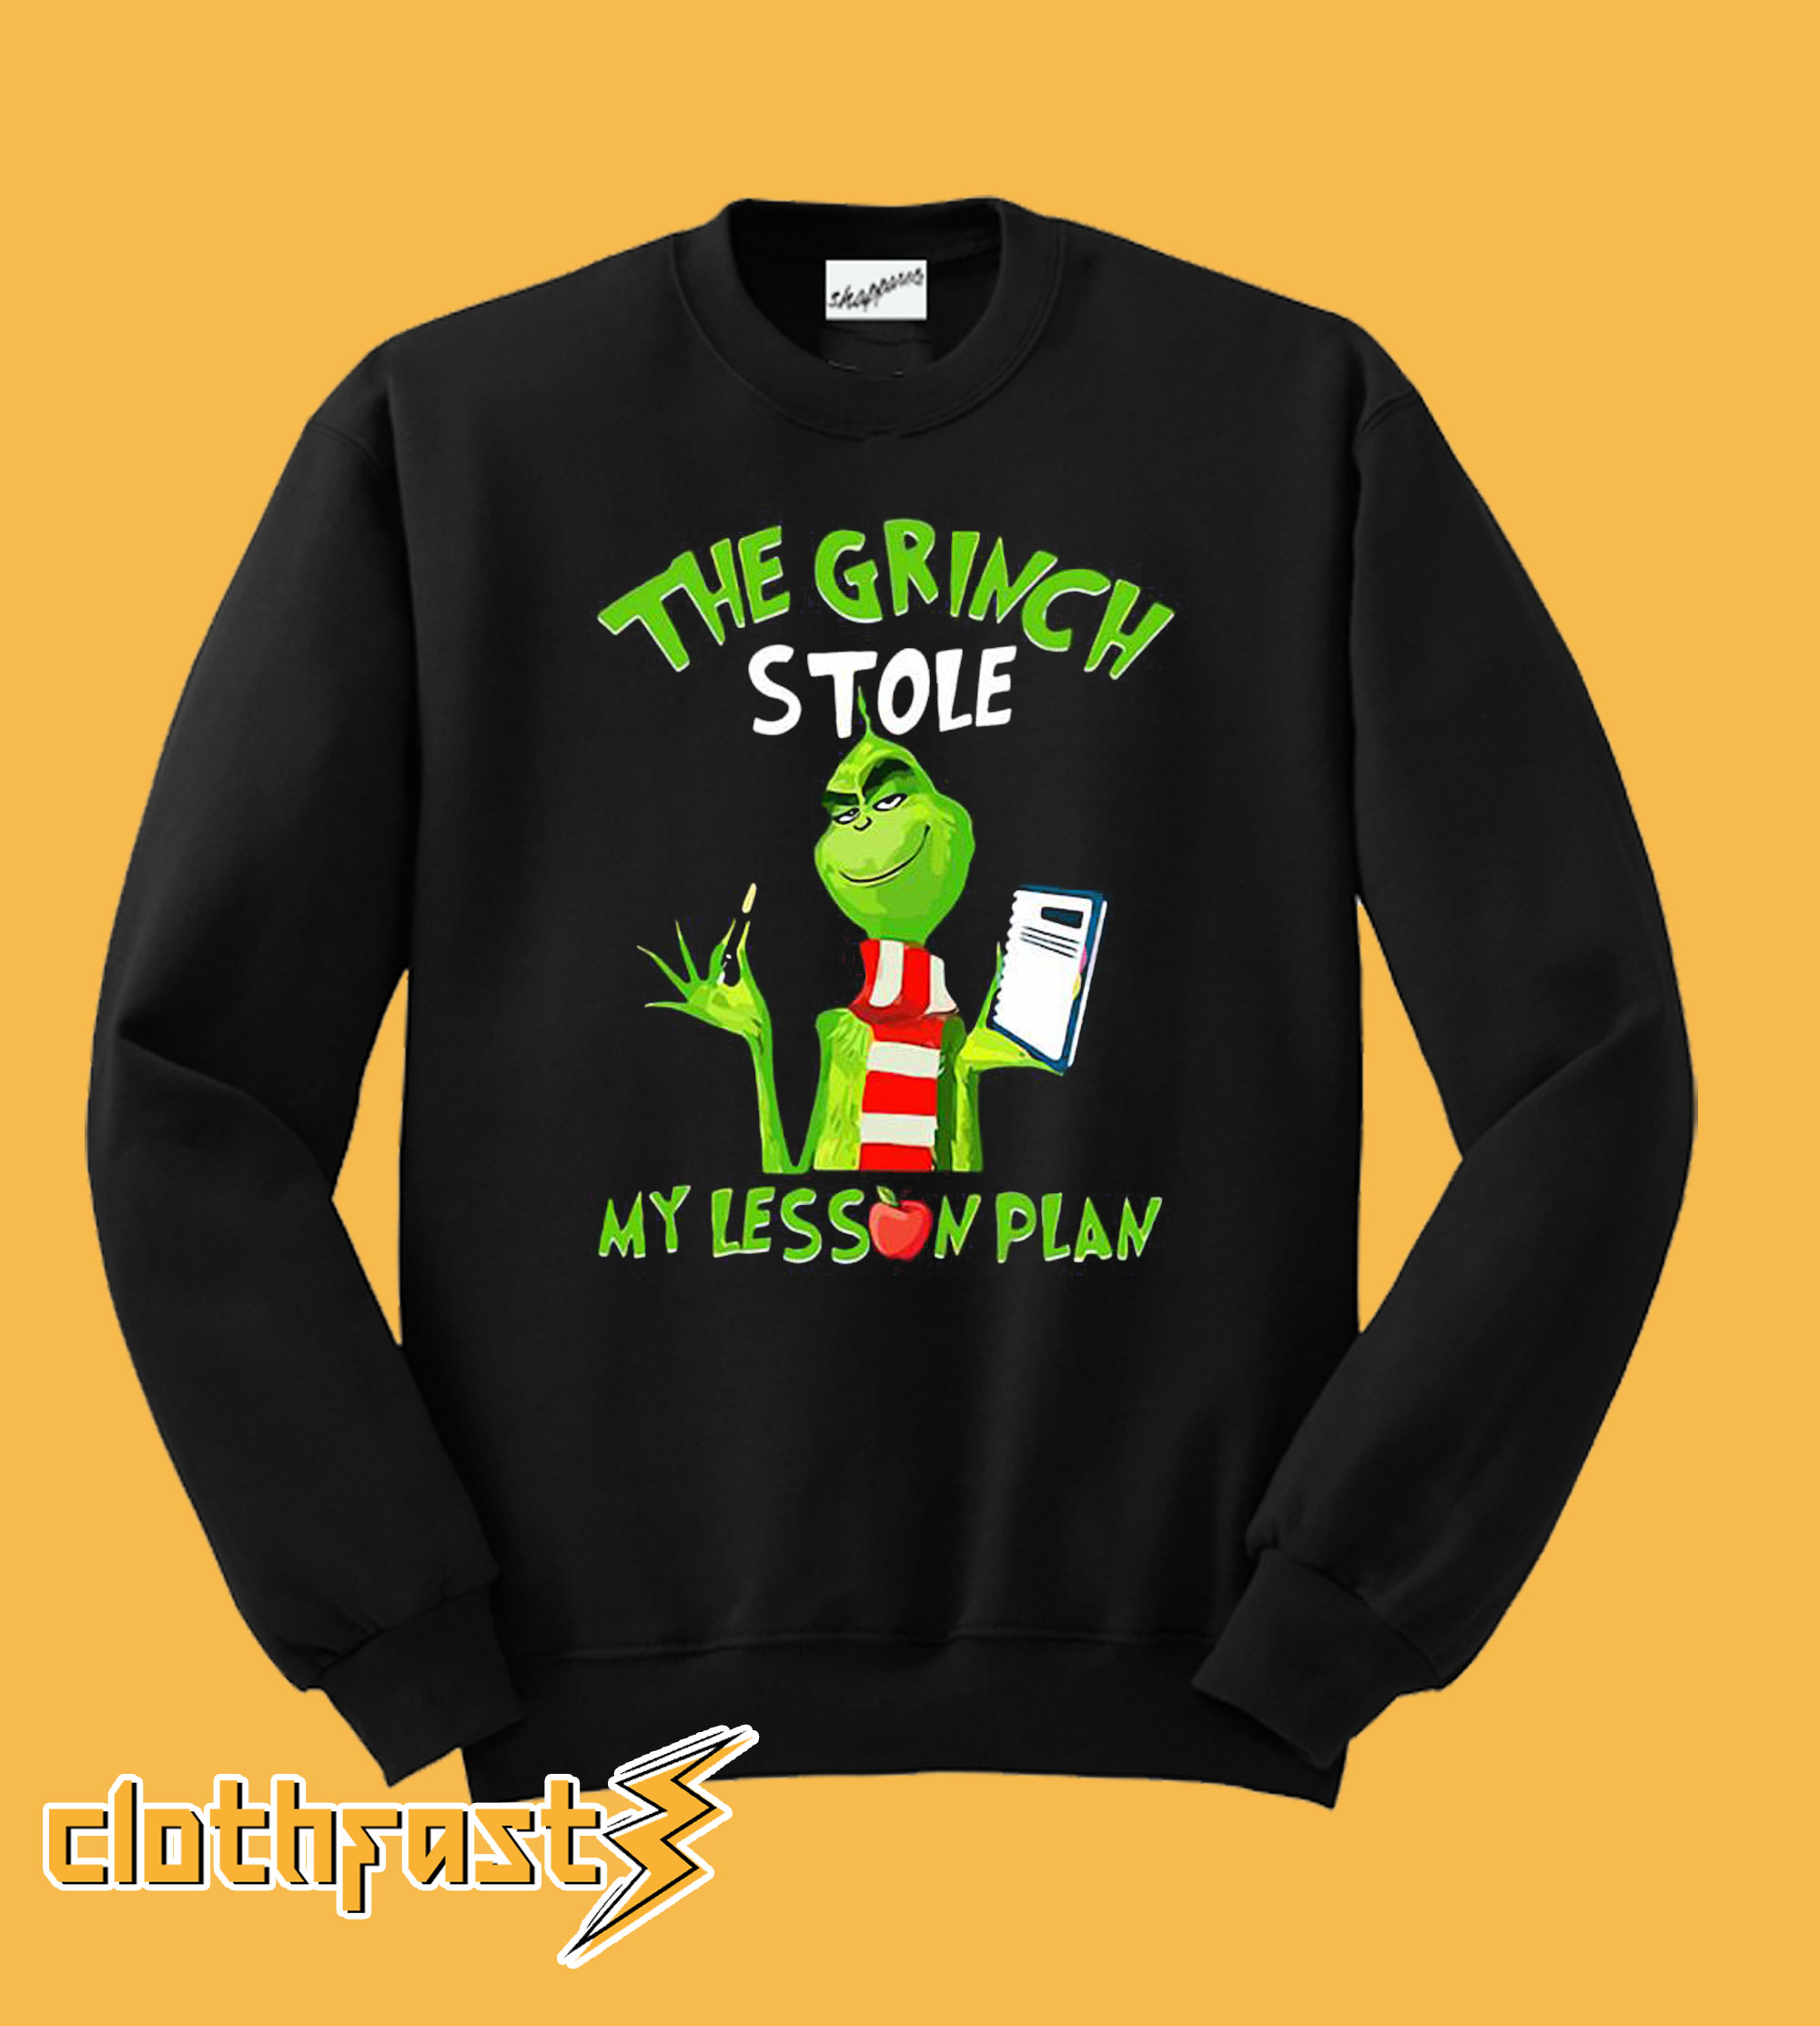 The Grinch Stole My Lesson Plan Sweatshirt